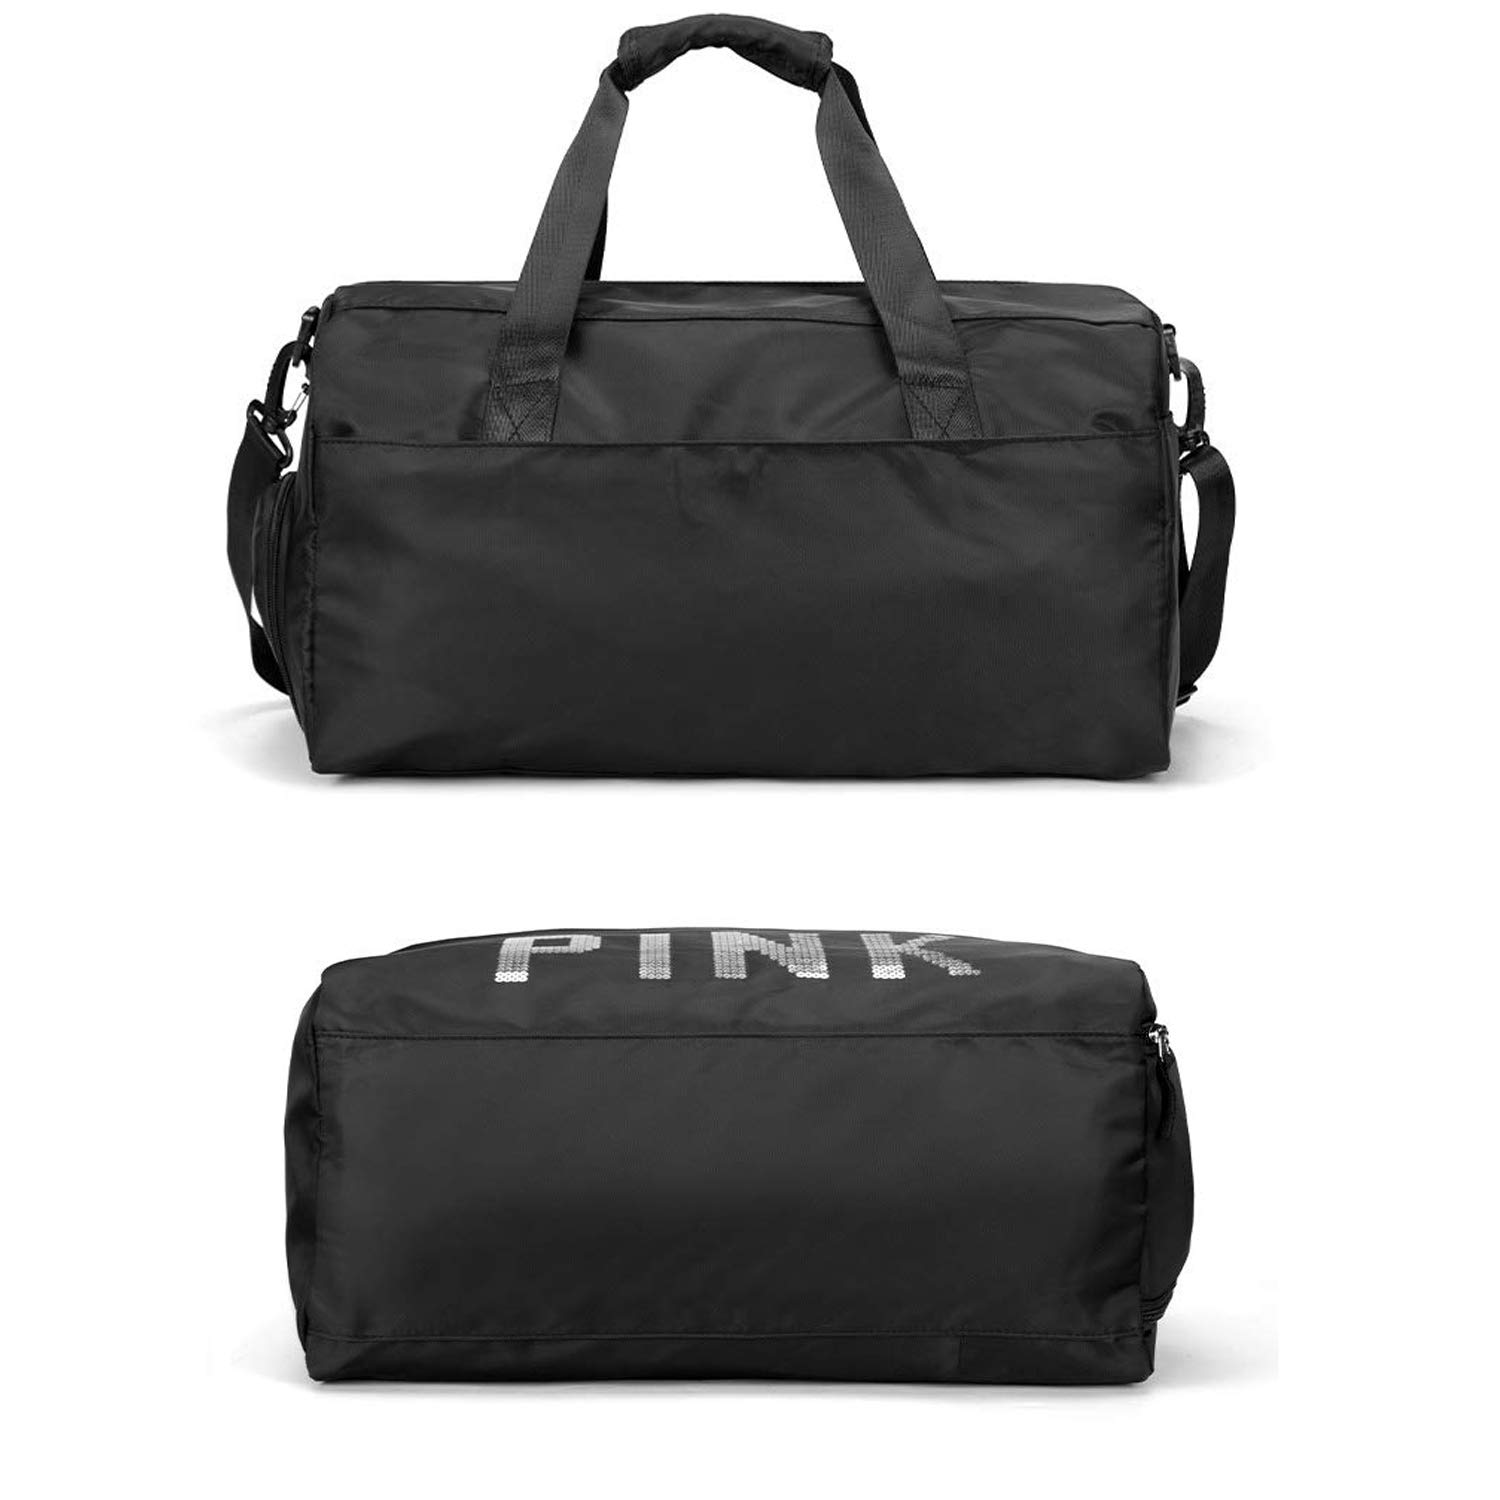 035f6f6fda10 Forestfish Swimming Travel Gym Bag Sports Duffel Bag with Dry Wet Pocket  Shoes Compartment for Men Women, Black